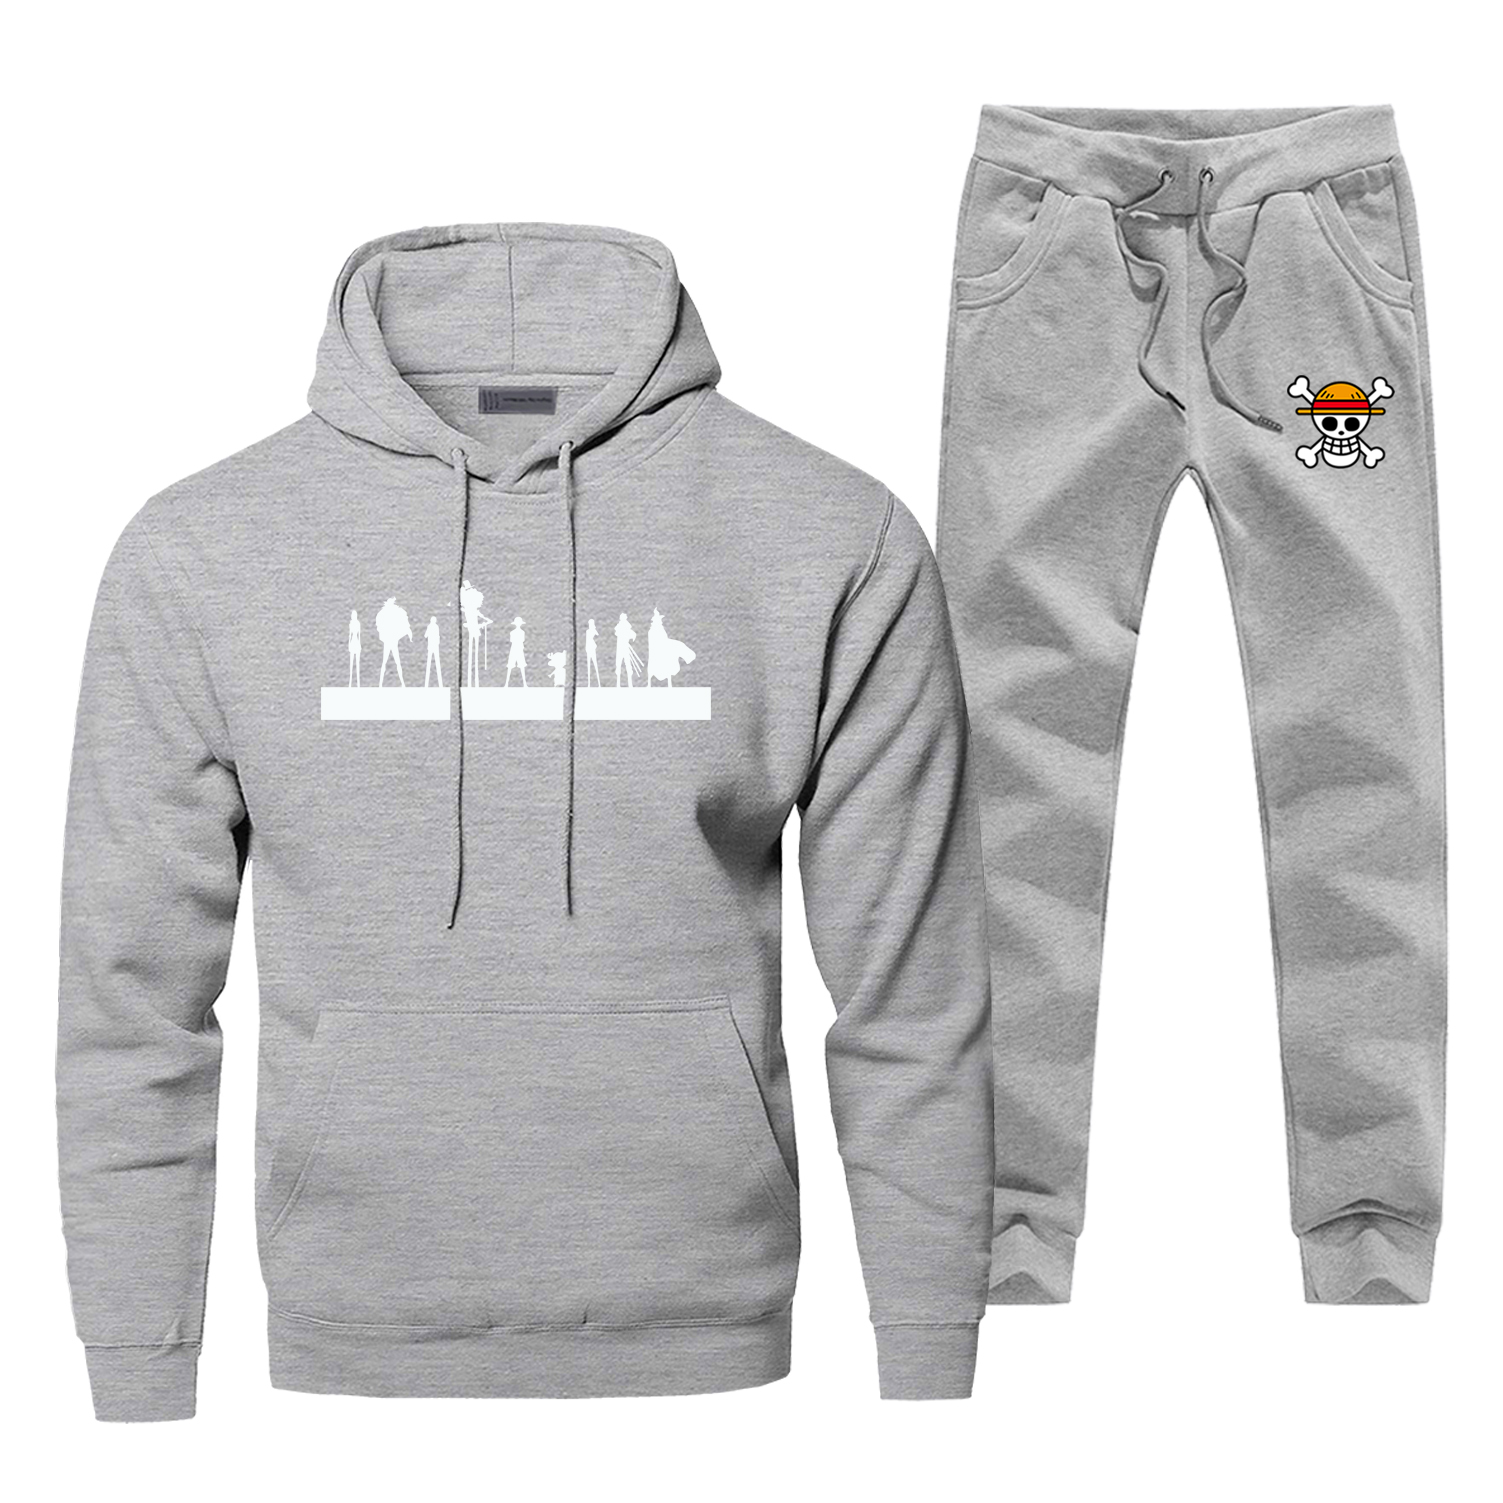 Hoodie Skull Luffy Pants Set Men One Piece Sweatshirt Male Hoodies Sweatshirts Mens Sets 2 Piece Pant Pullover Japan Anime Coat